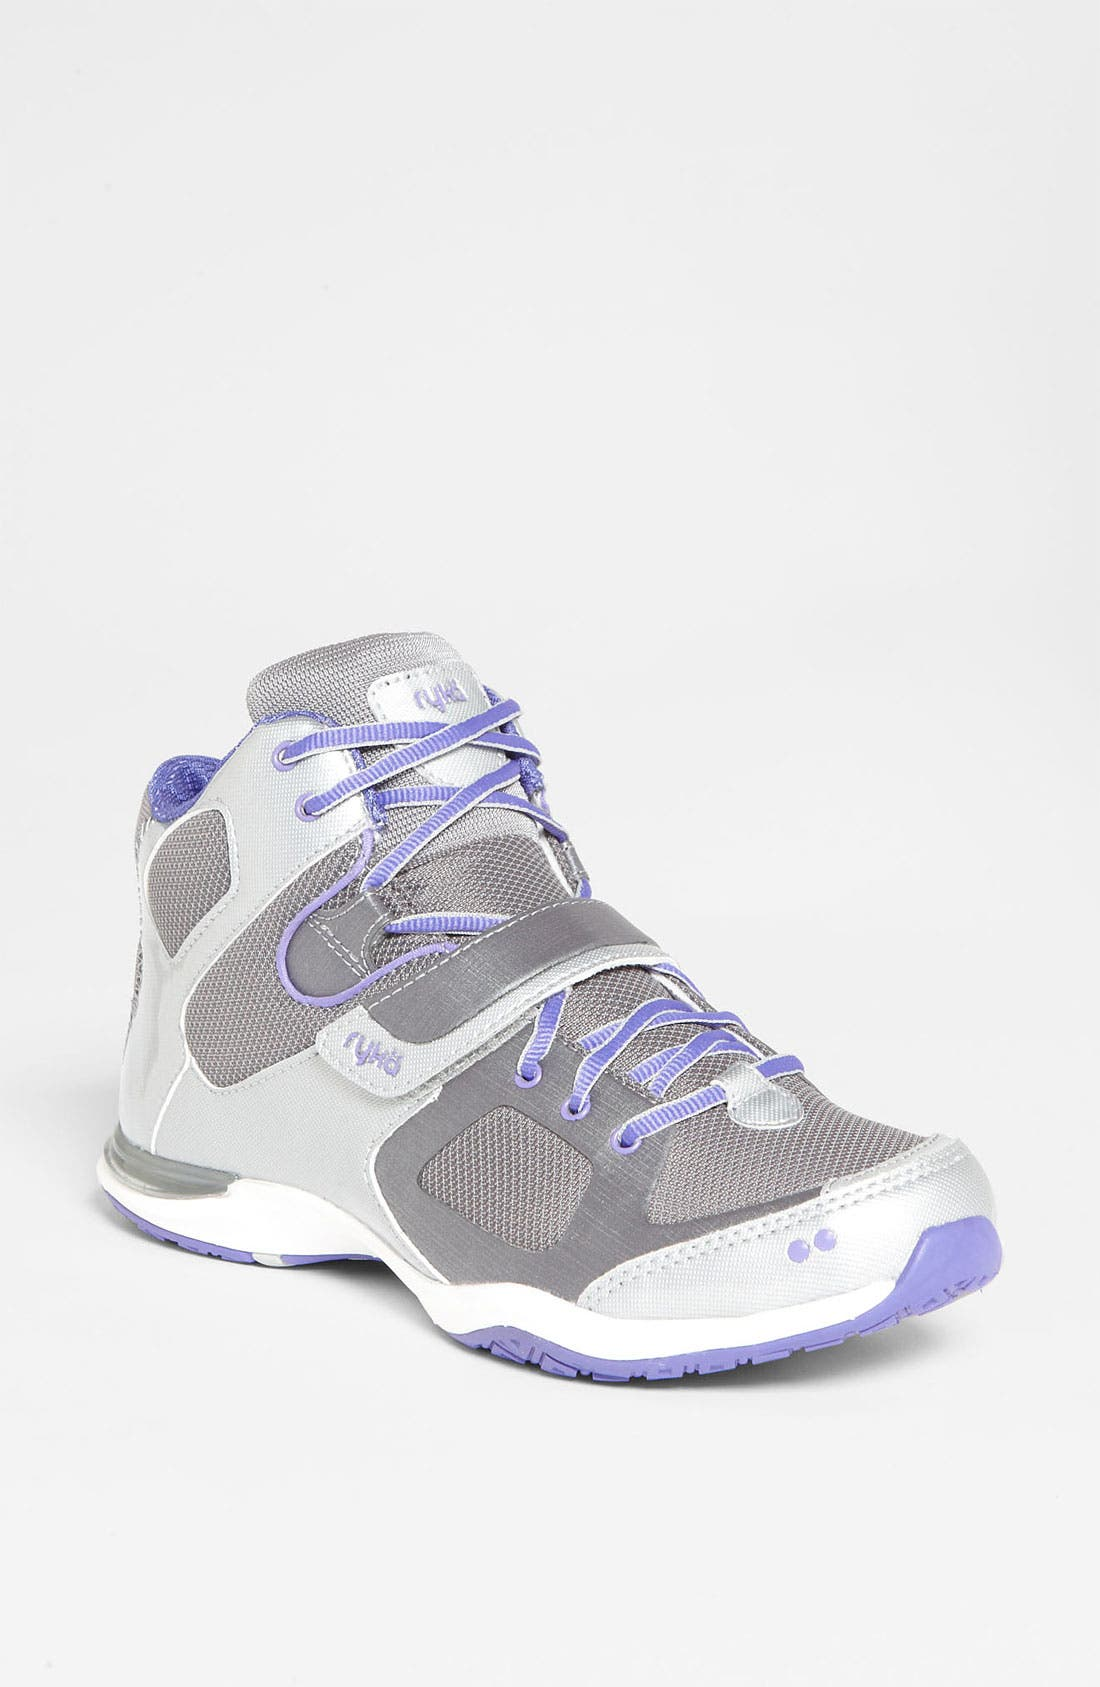 Main Image - rykä 'Downbeat' Training Shoe (Women)